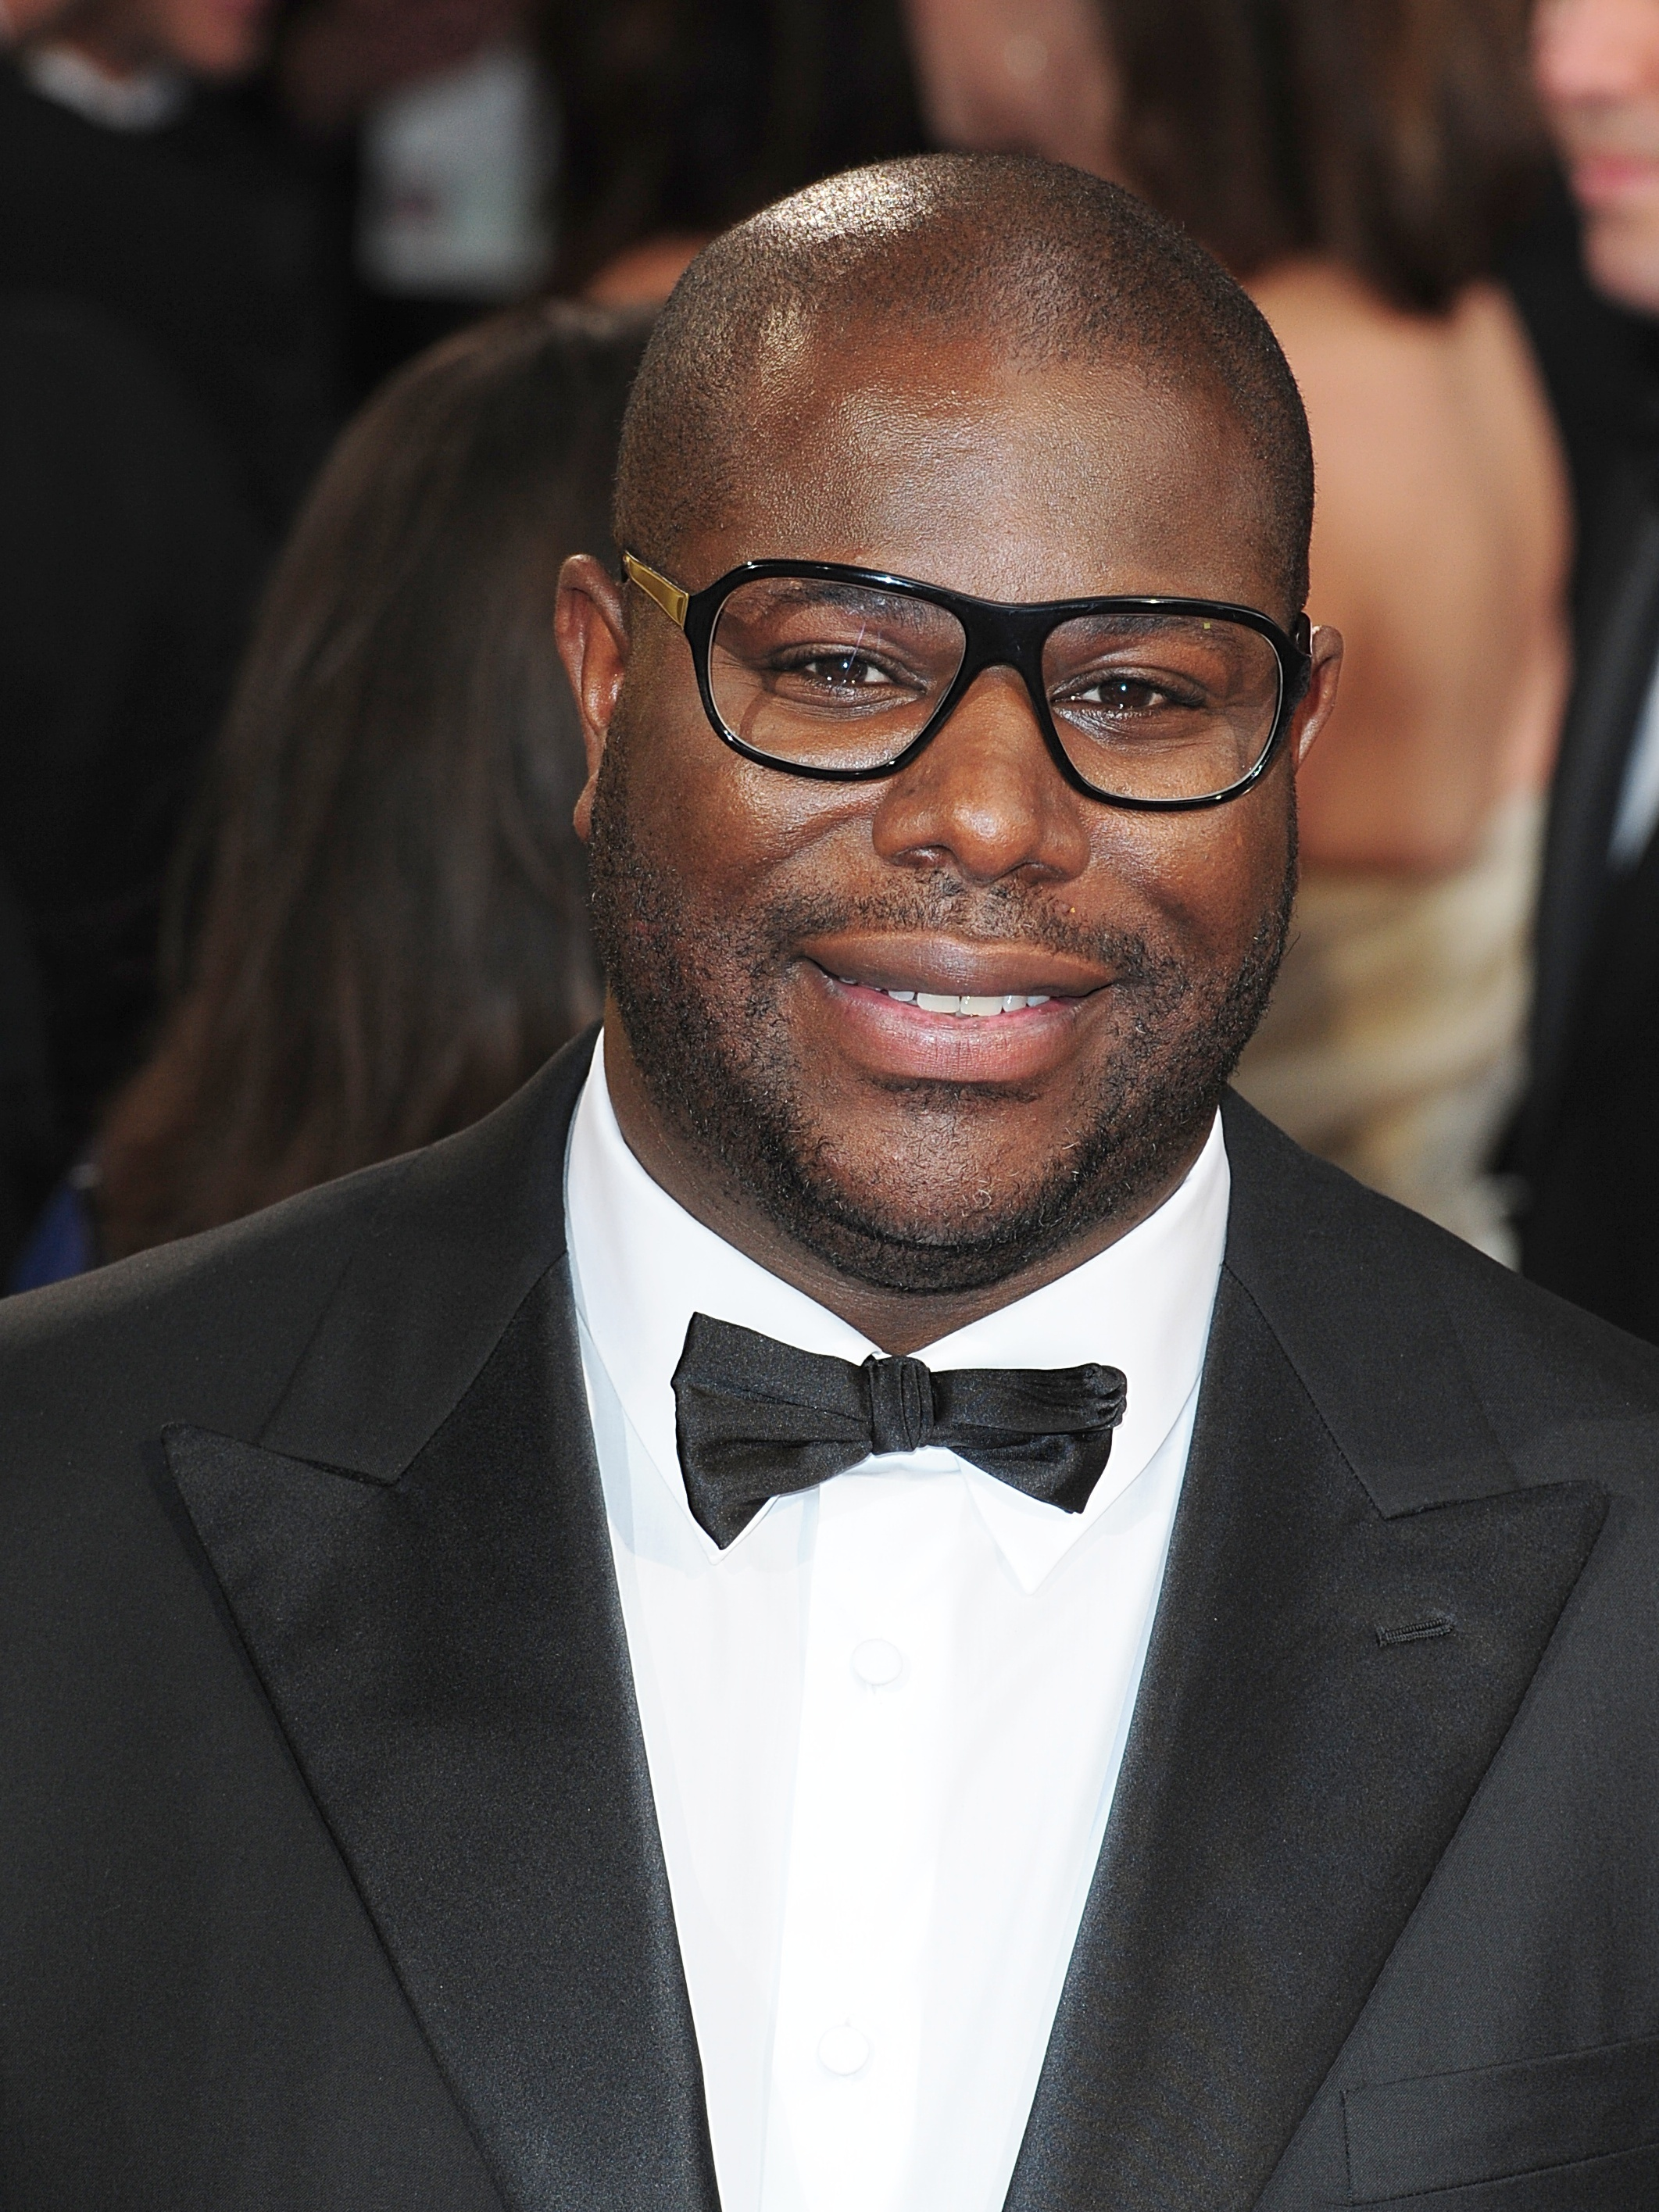 Oscar winner Steve McQueen, who is planning a film about the life of American singer and actor Paul Robeson. Issue date: Wednesday November 19, 2014.